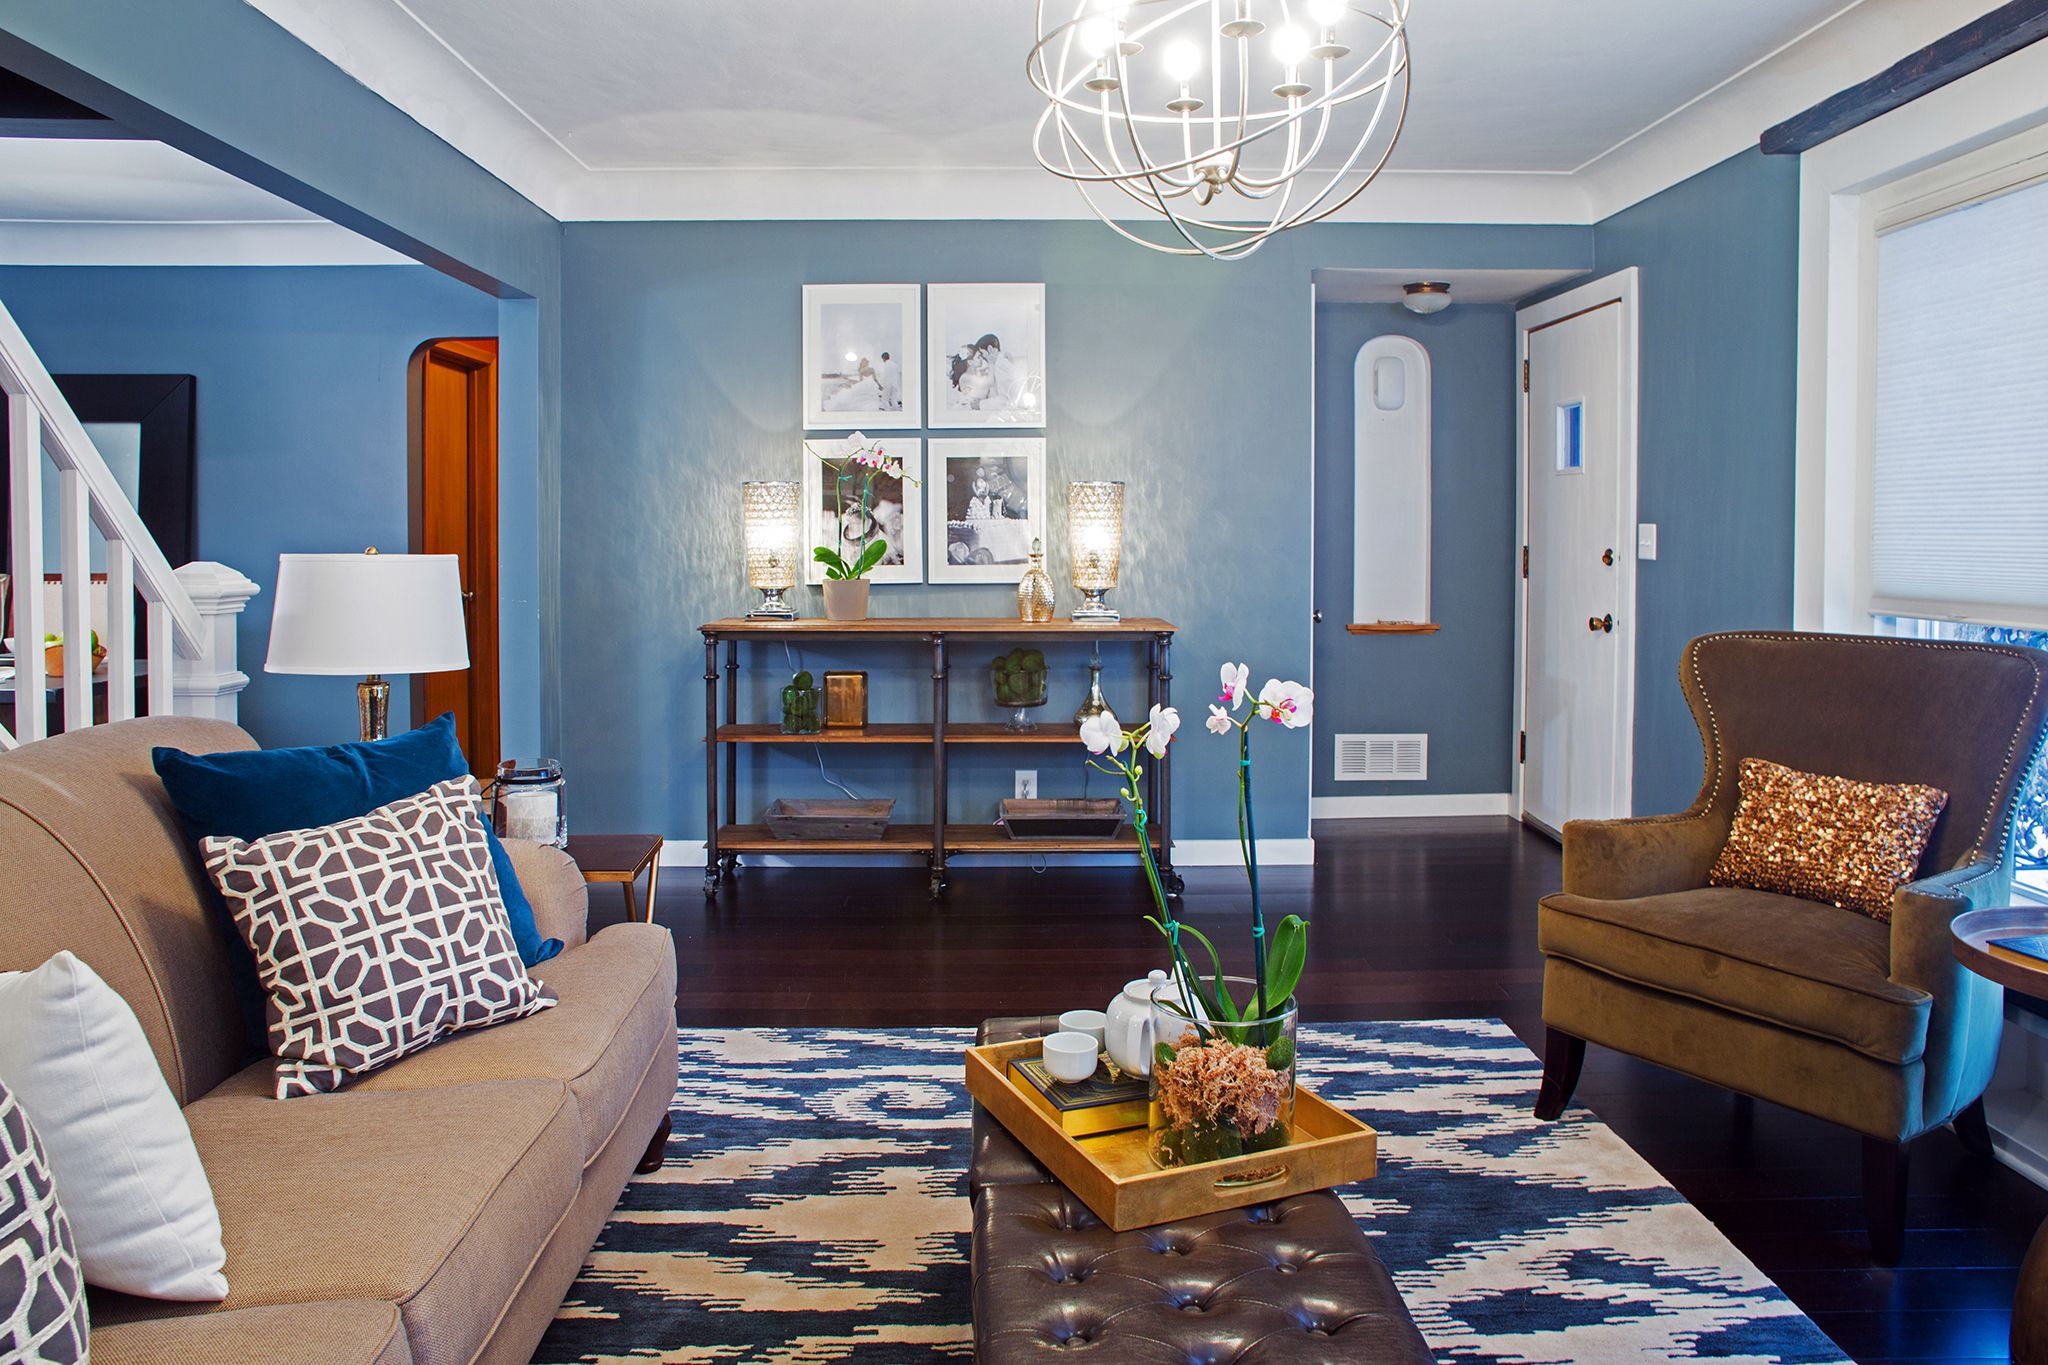 Captivating Living Room Beautiful Paint Colors For Accent Wall Amazing In Teal Painted  Blue Geometric Modern Rug